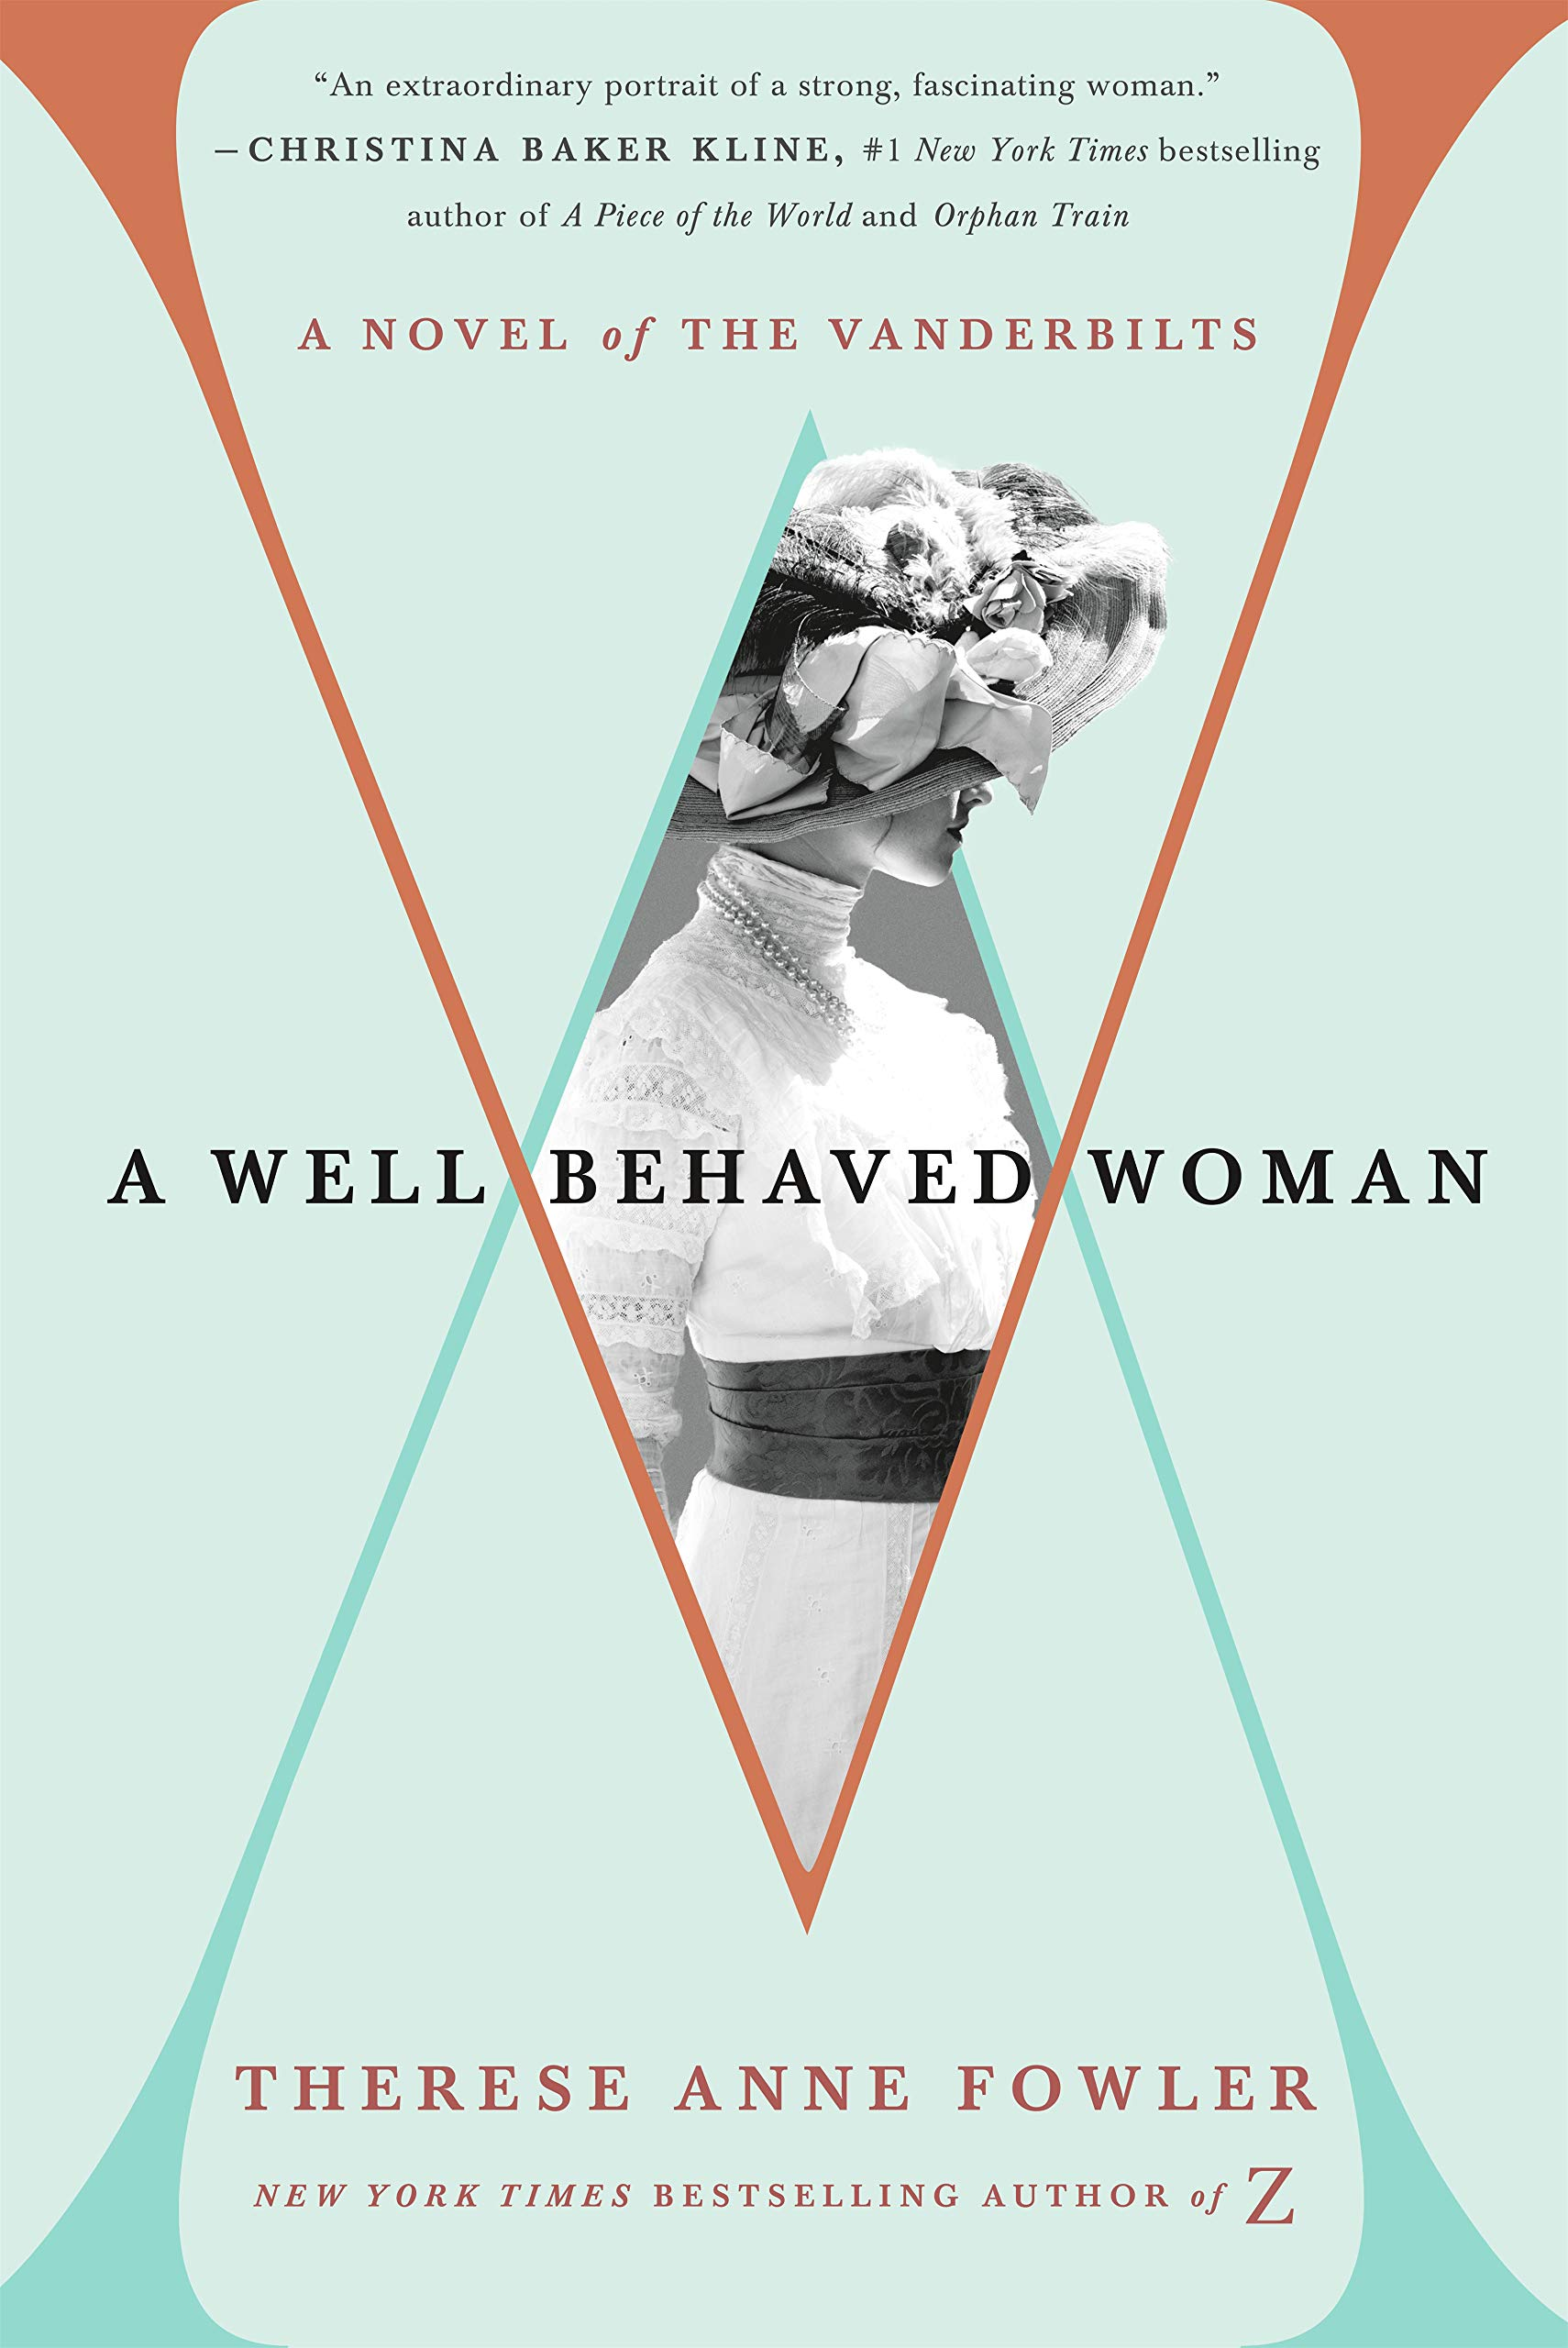 A Well-Behaved Woman by Therese Anne Fowler